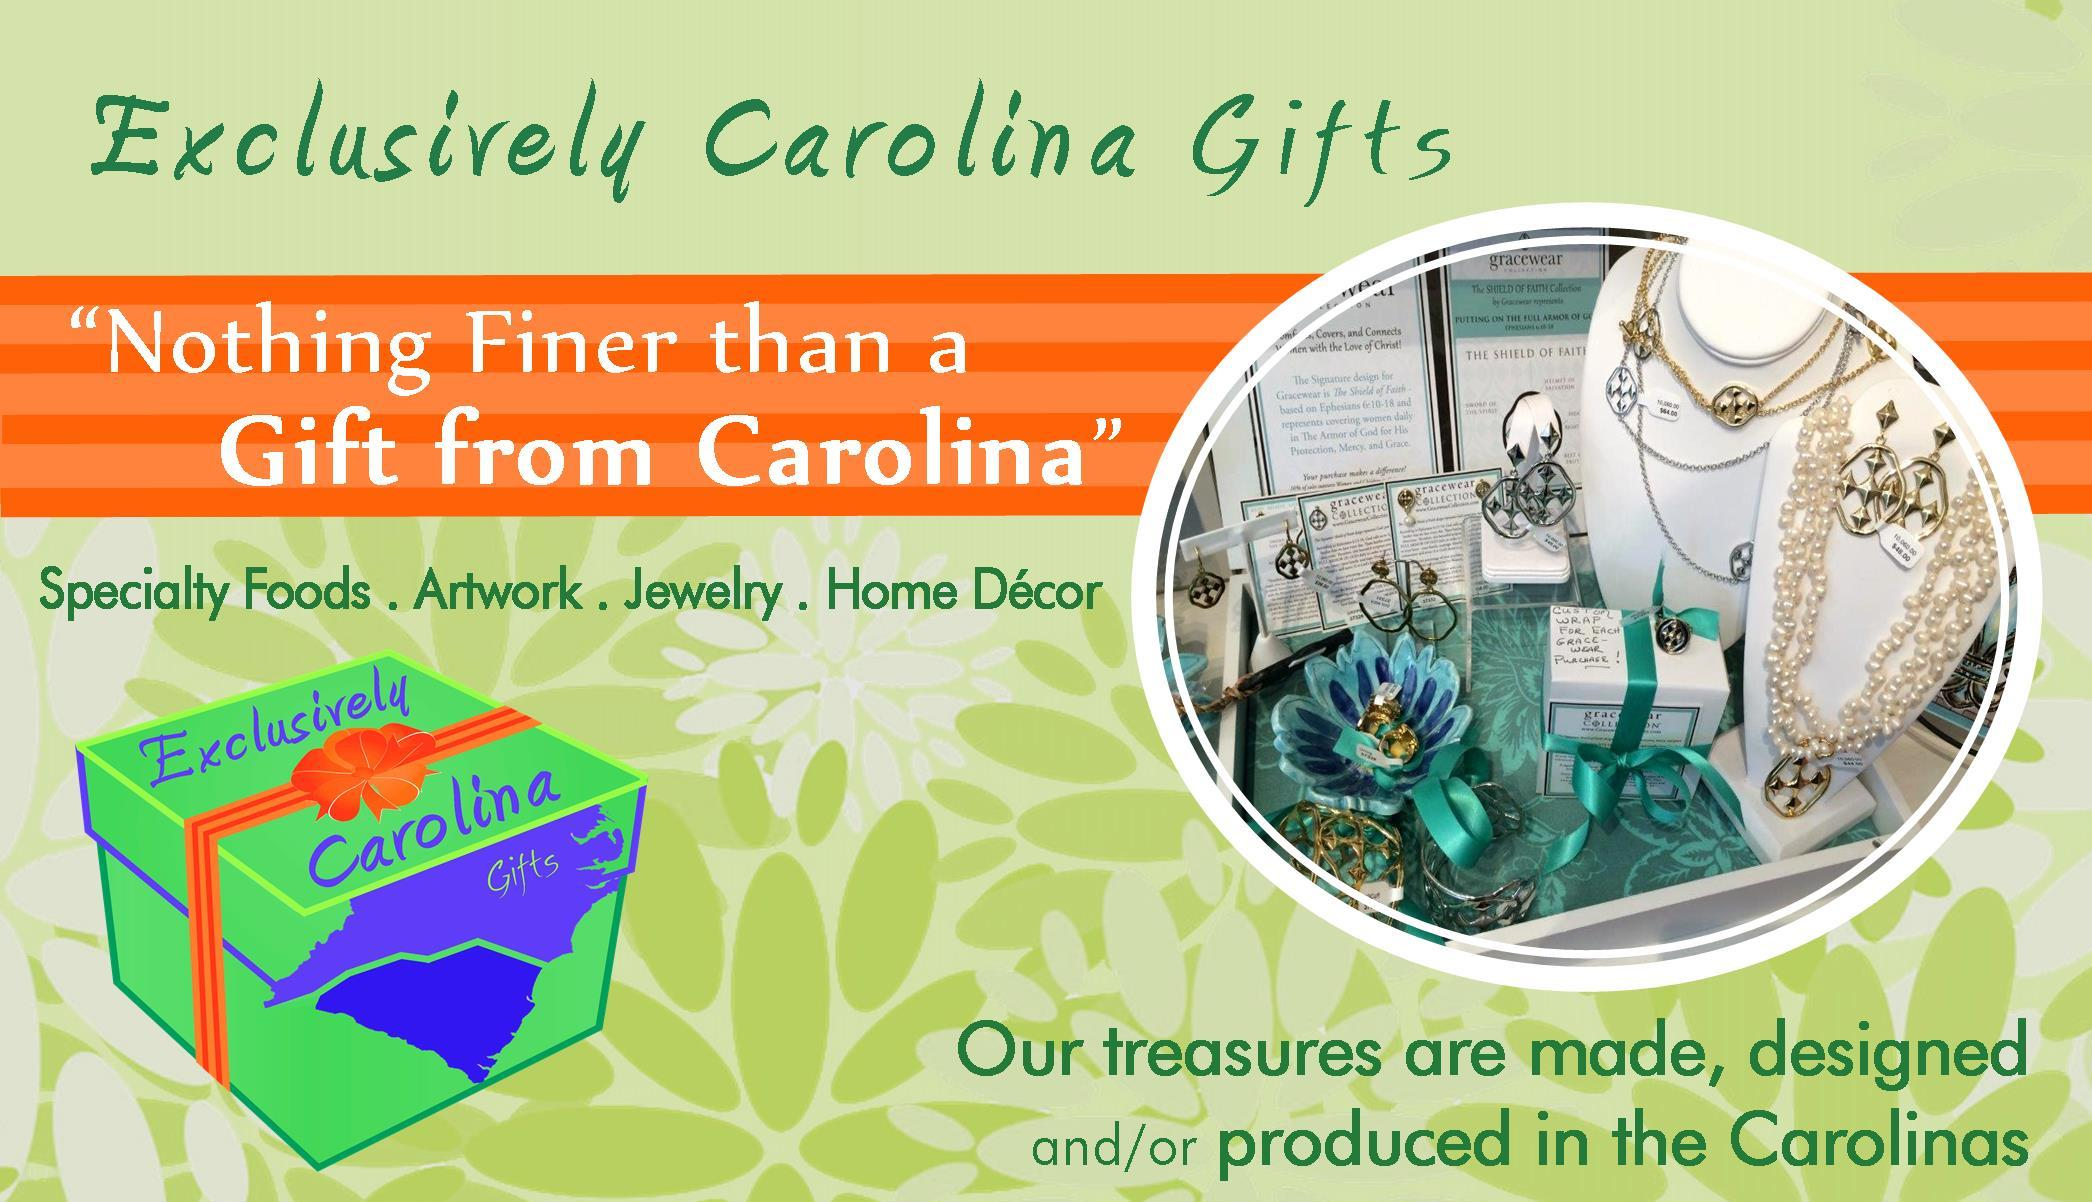 Exclusively Carolina Gifts